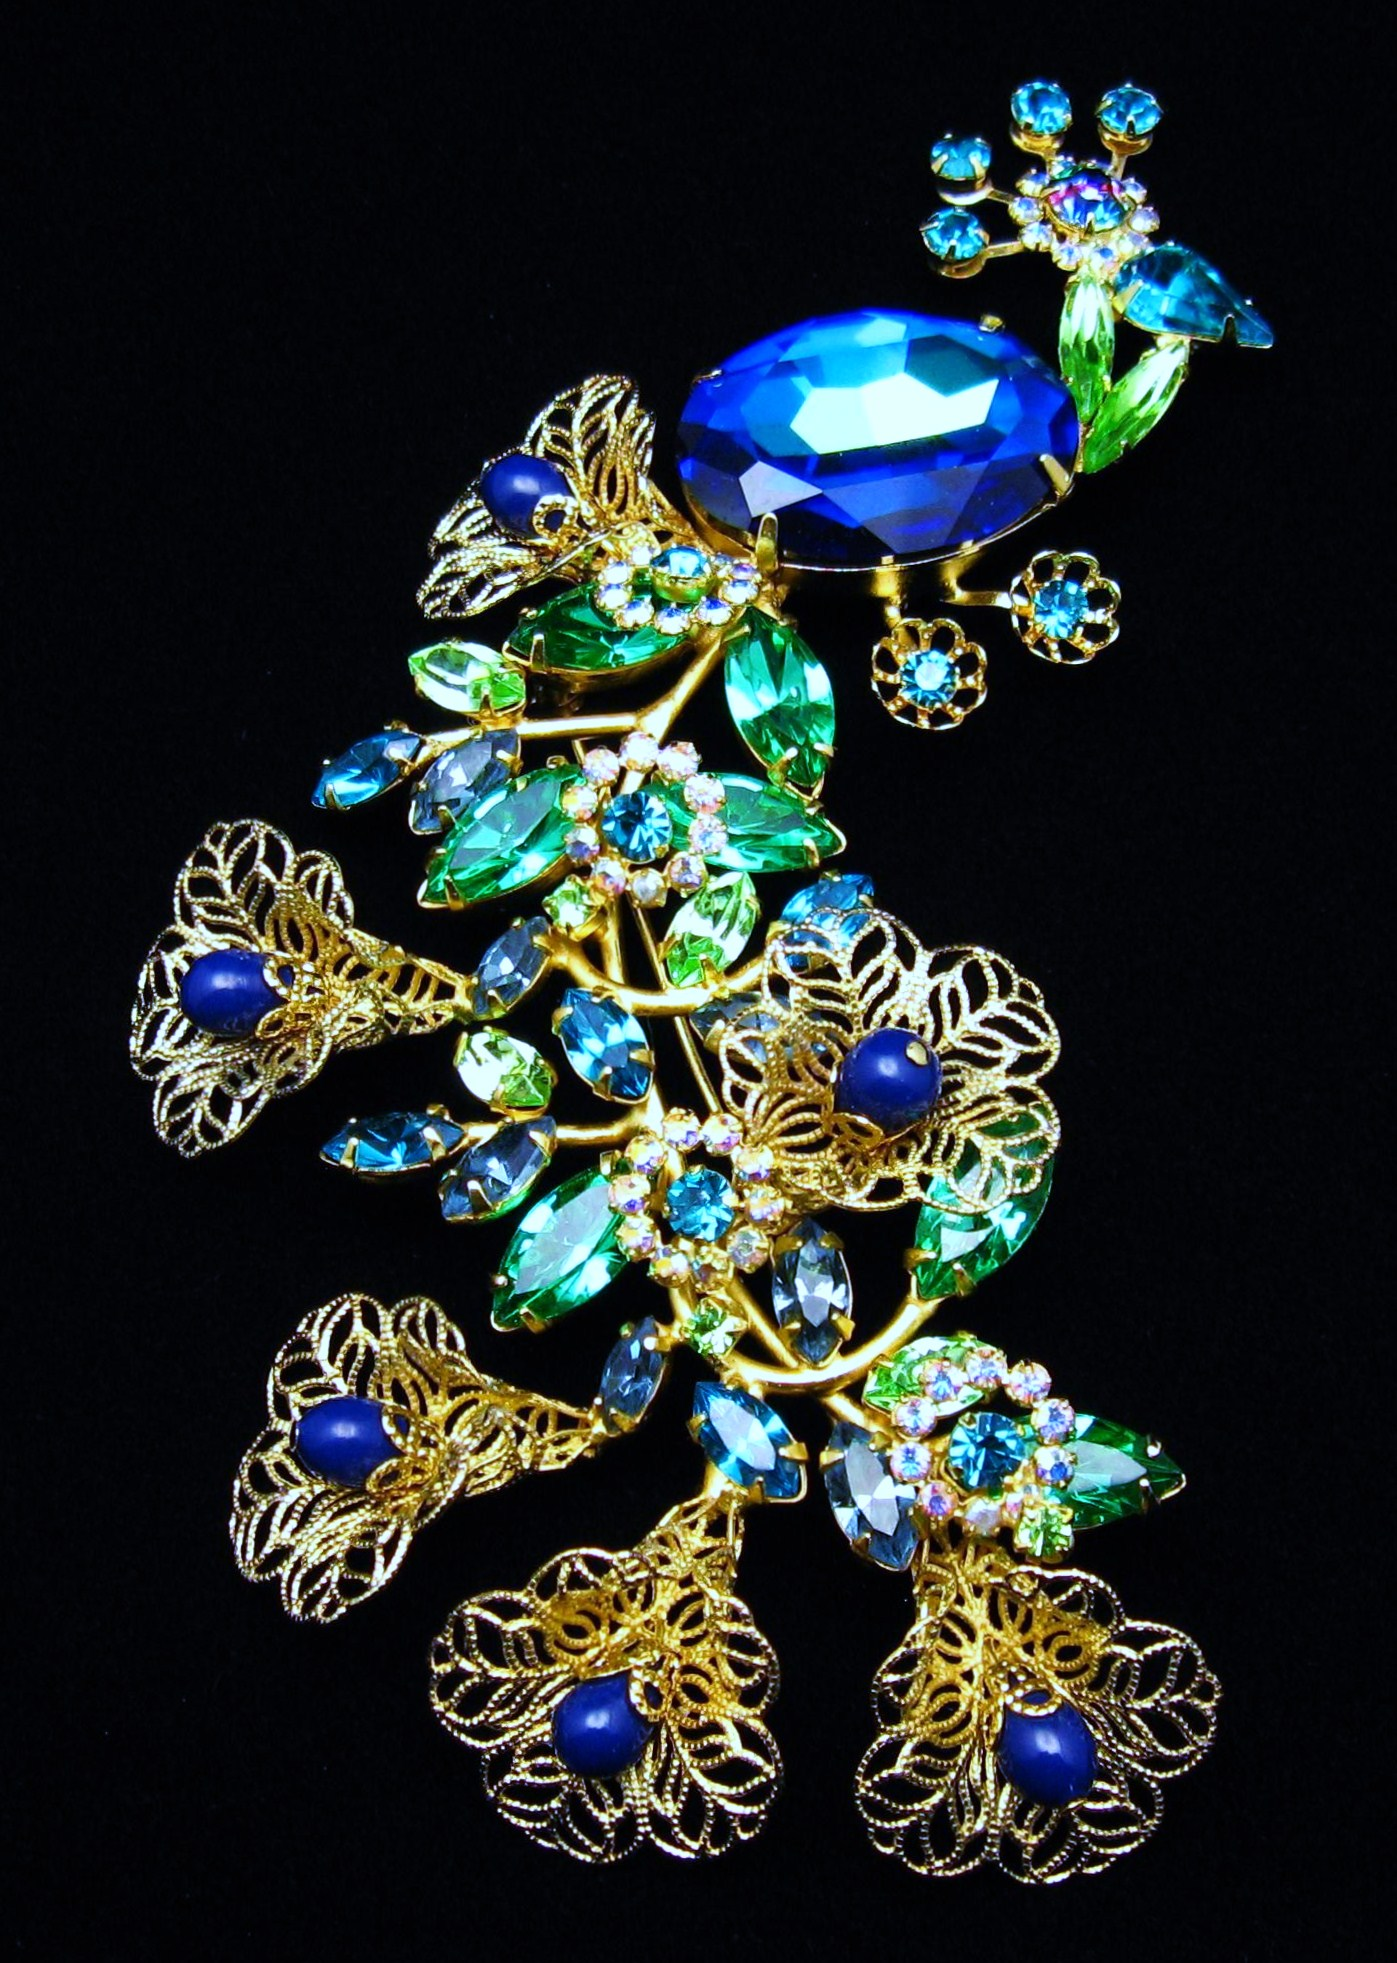 katerina musetti haute couture jewelry peacock brooch